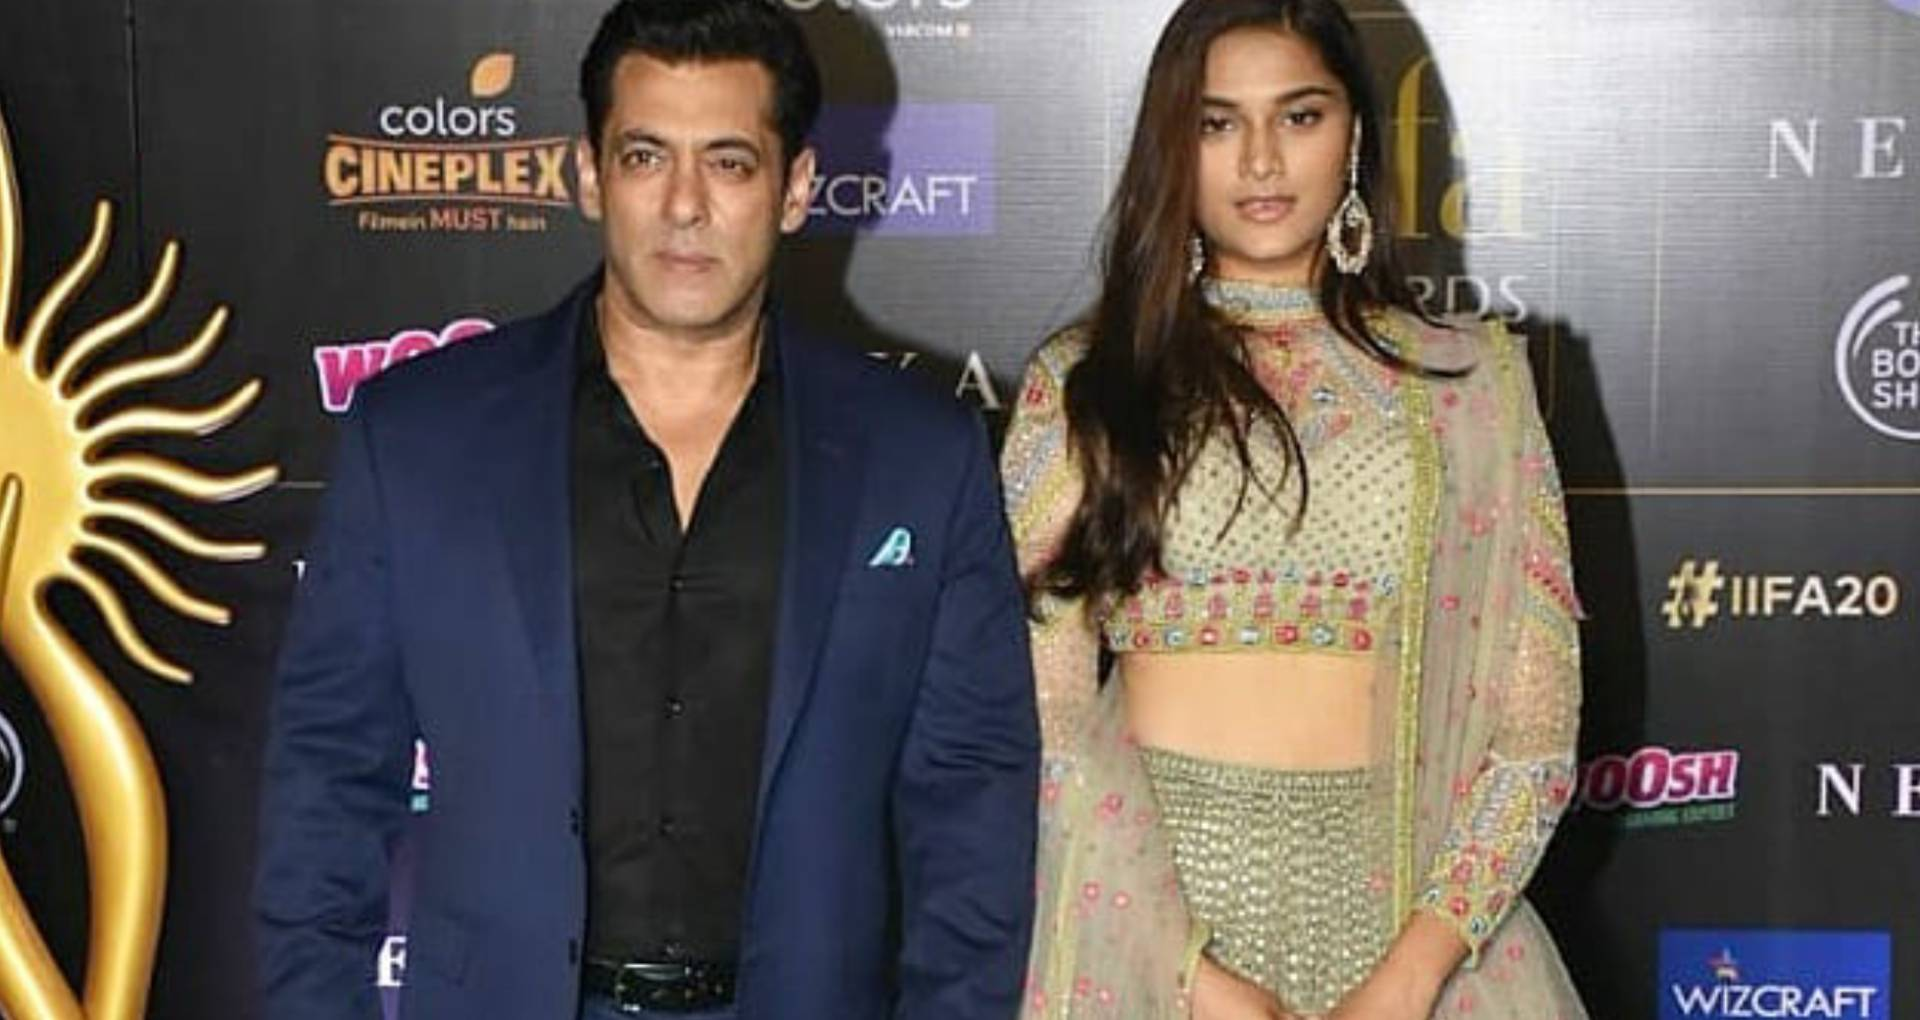 Image result for iifa dog entry with salman khan